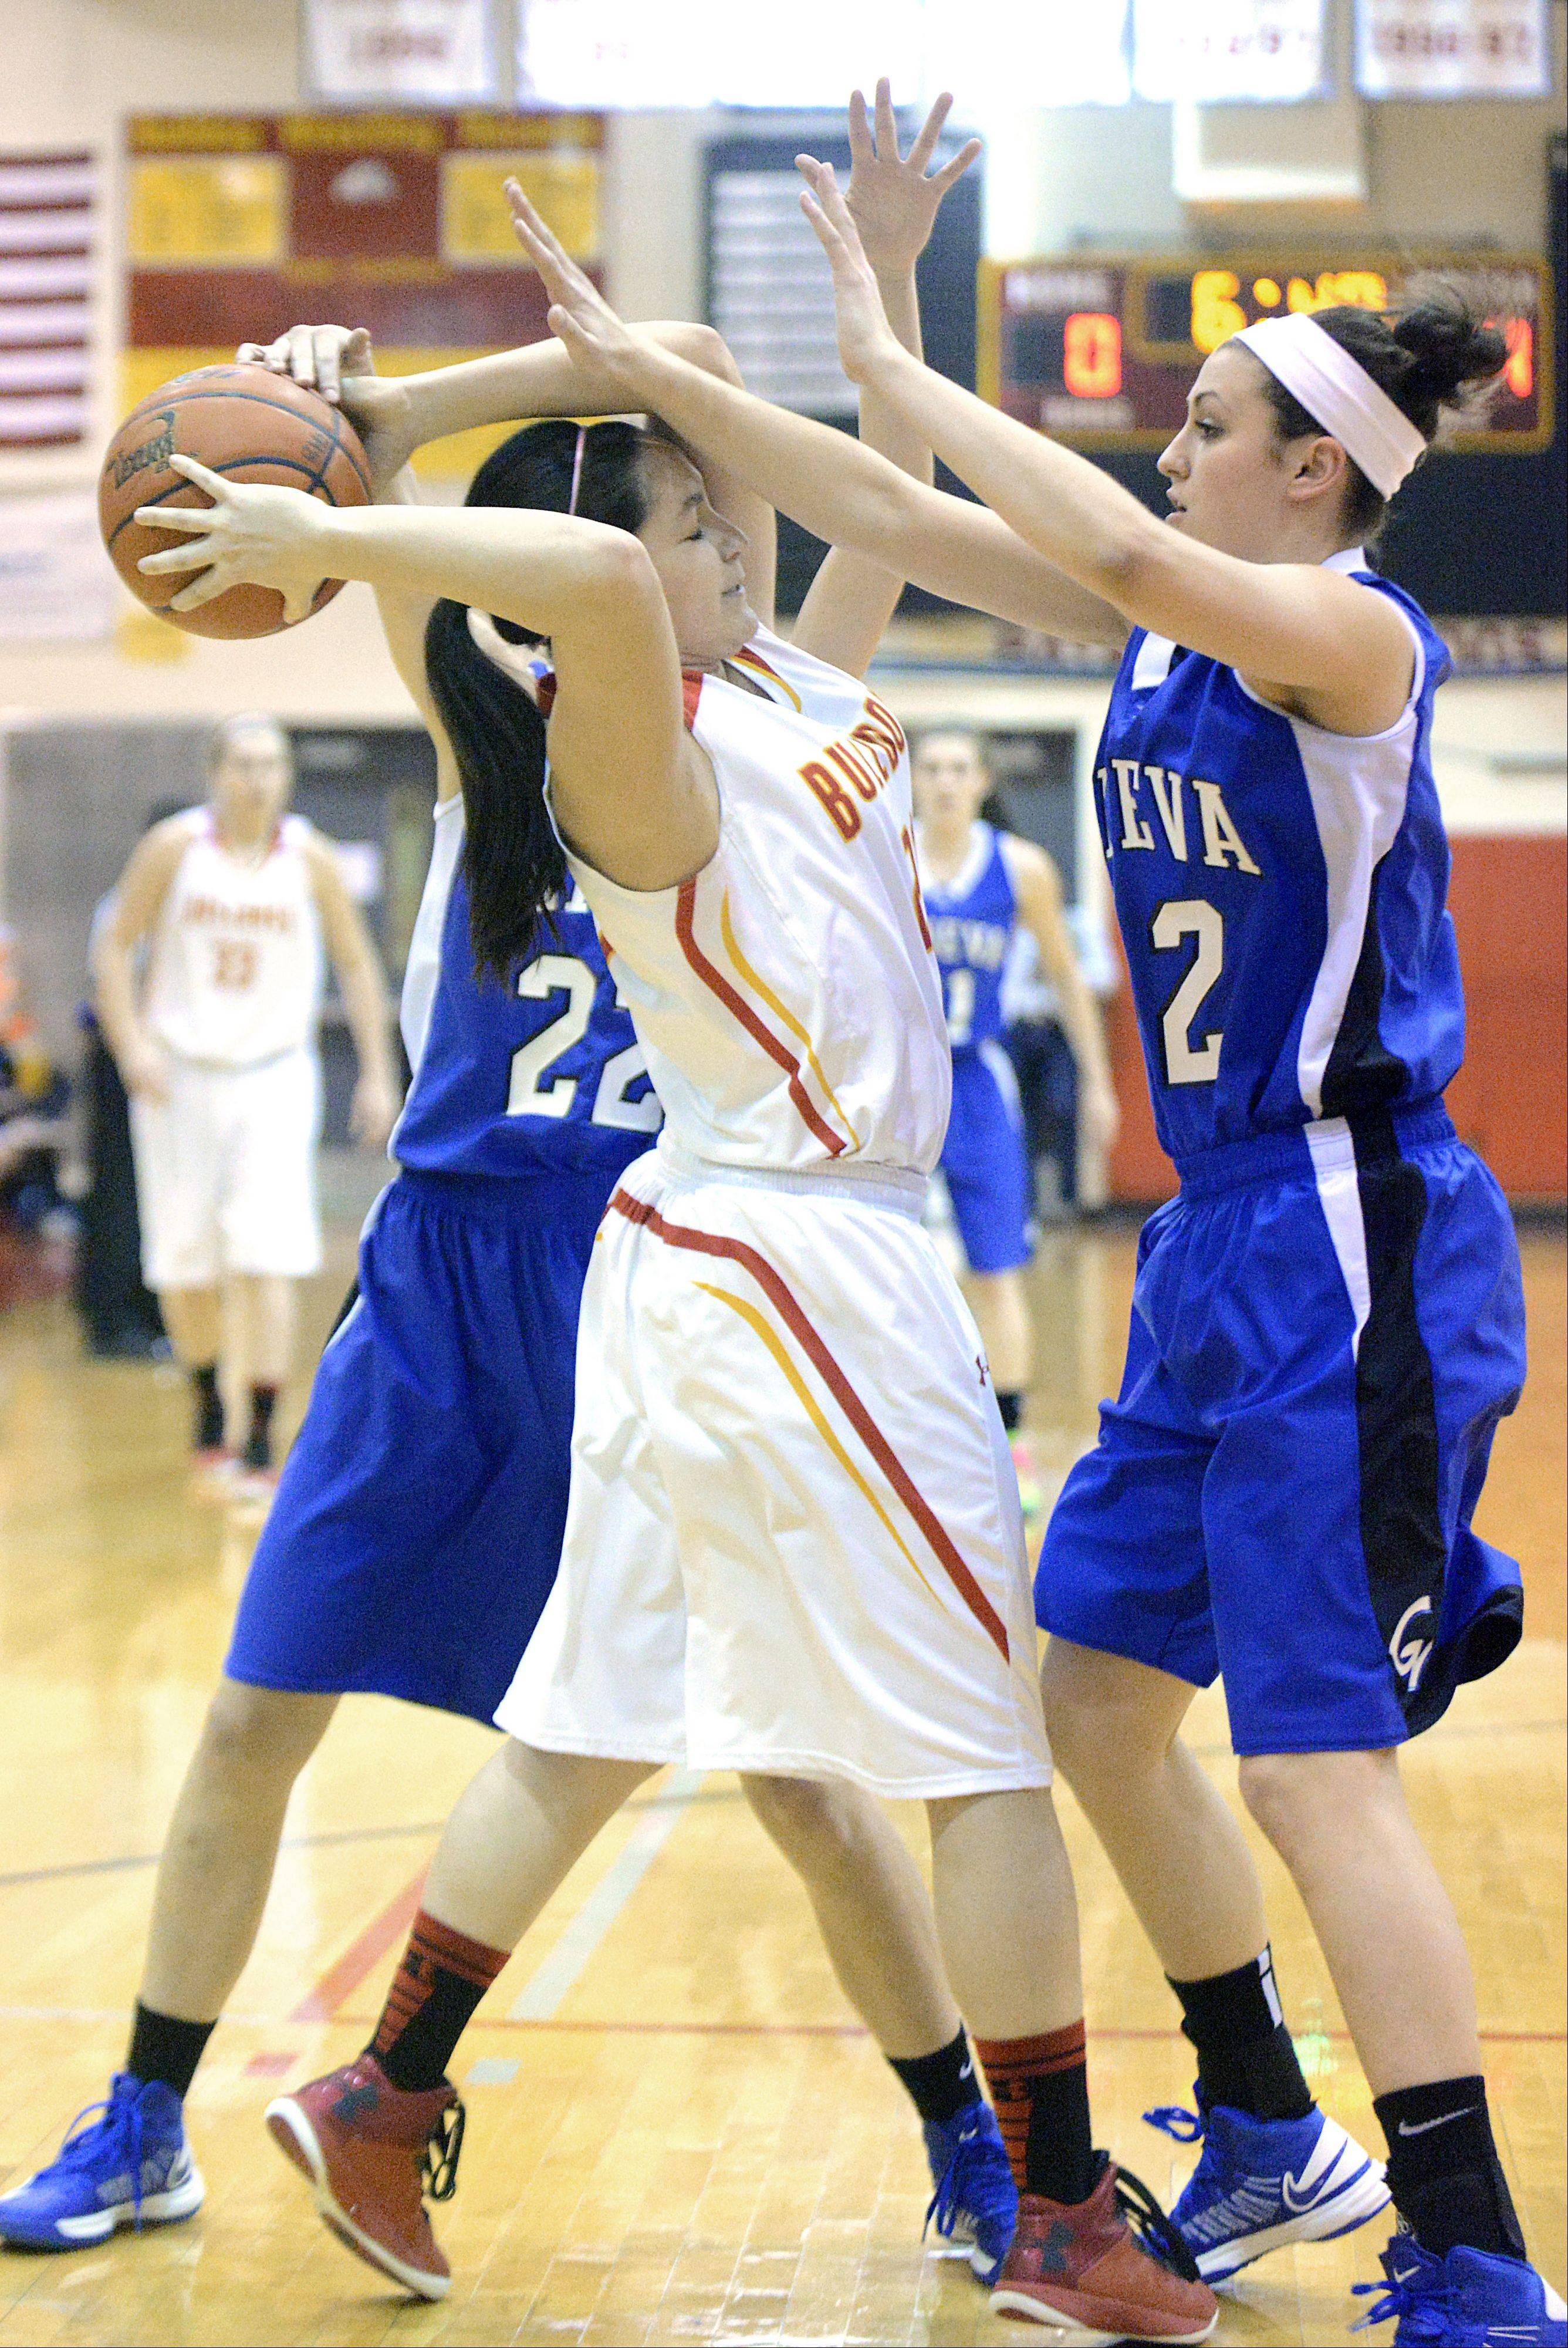 Geneva's Morgan Seberger and Abby Novak smother Batavia's Sami Villarreal after grabbing a Vikings rebound in the first quarter on Friday, January 11.